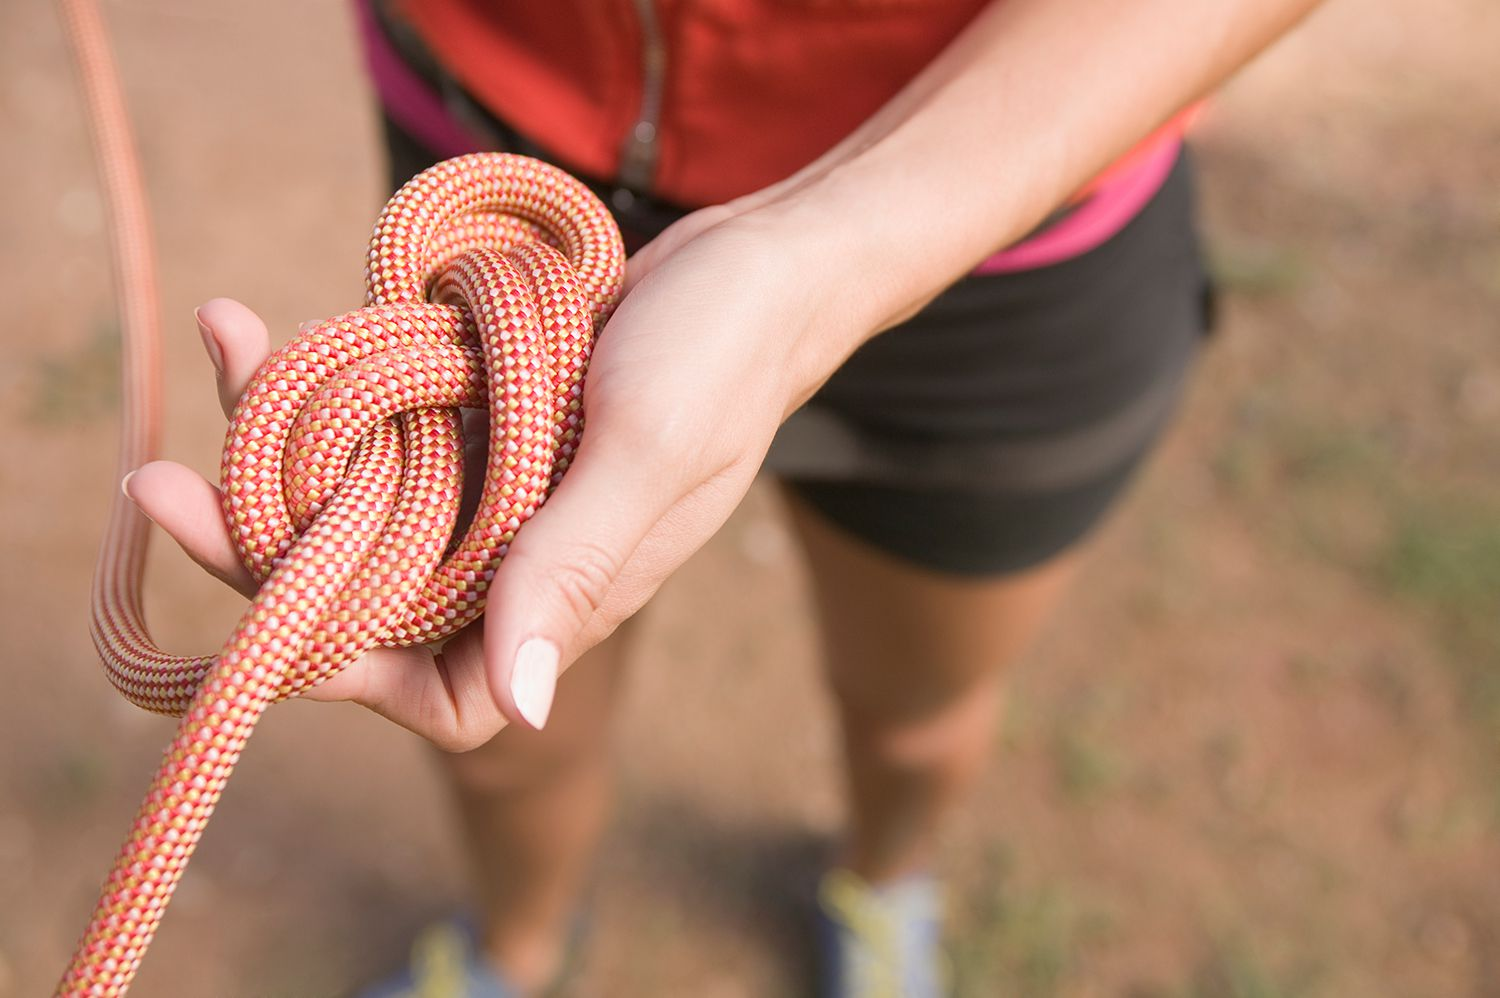 Person holding rope with knot.